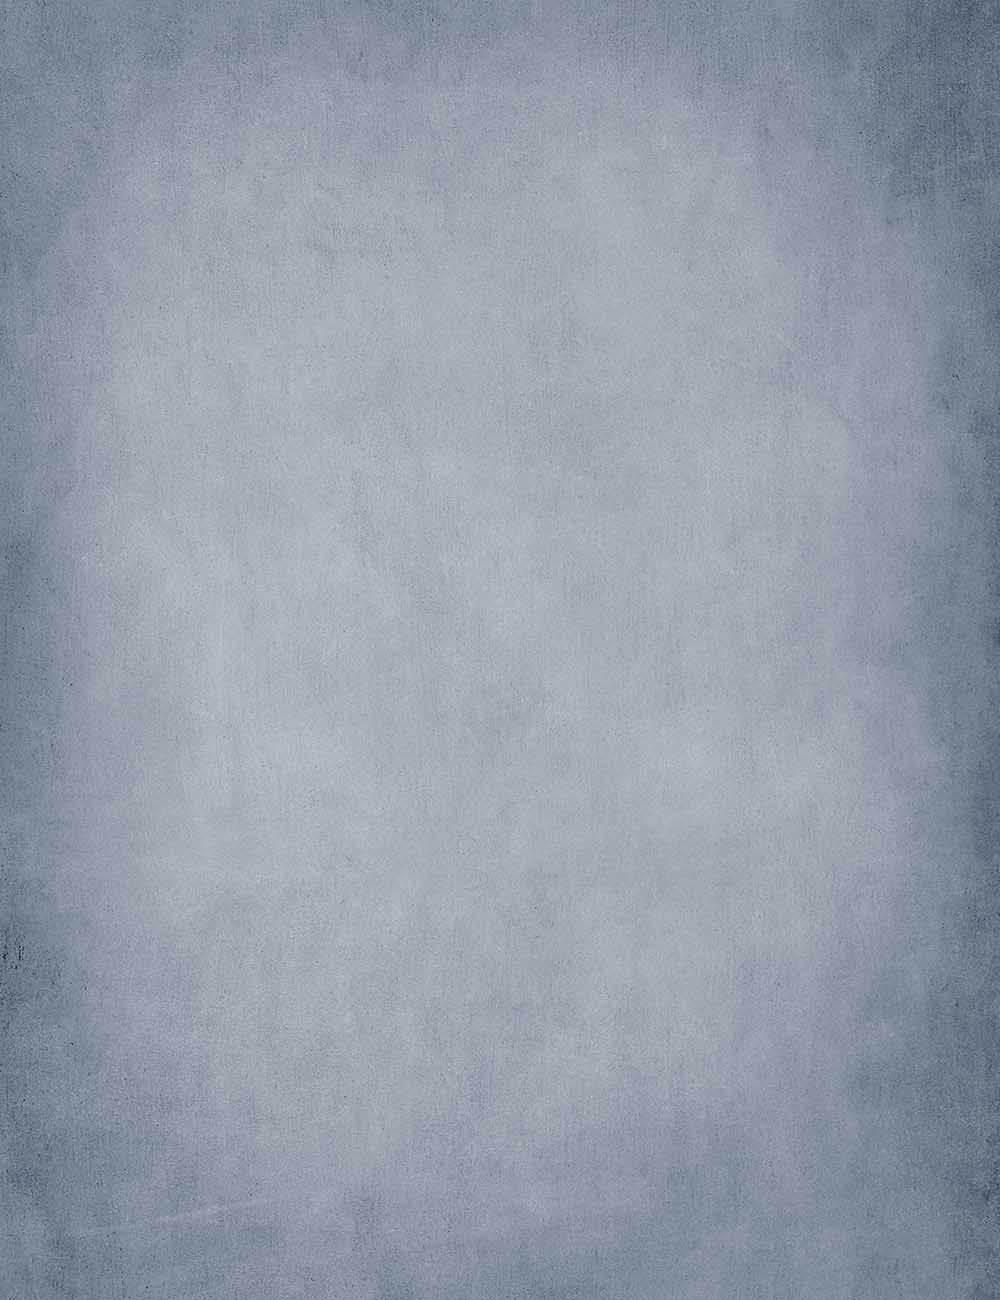 Abstract Pale Blue Nearly Solid Old Master Backdrop For Photography - Shop Backdrop